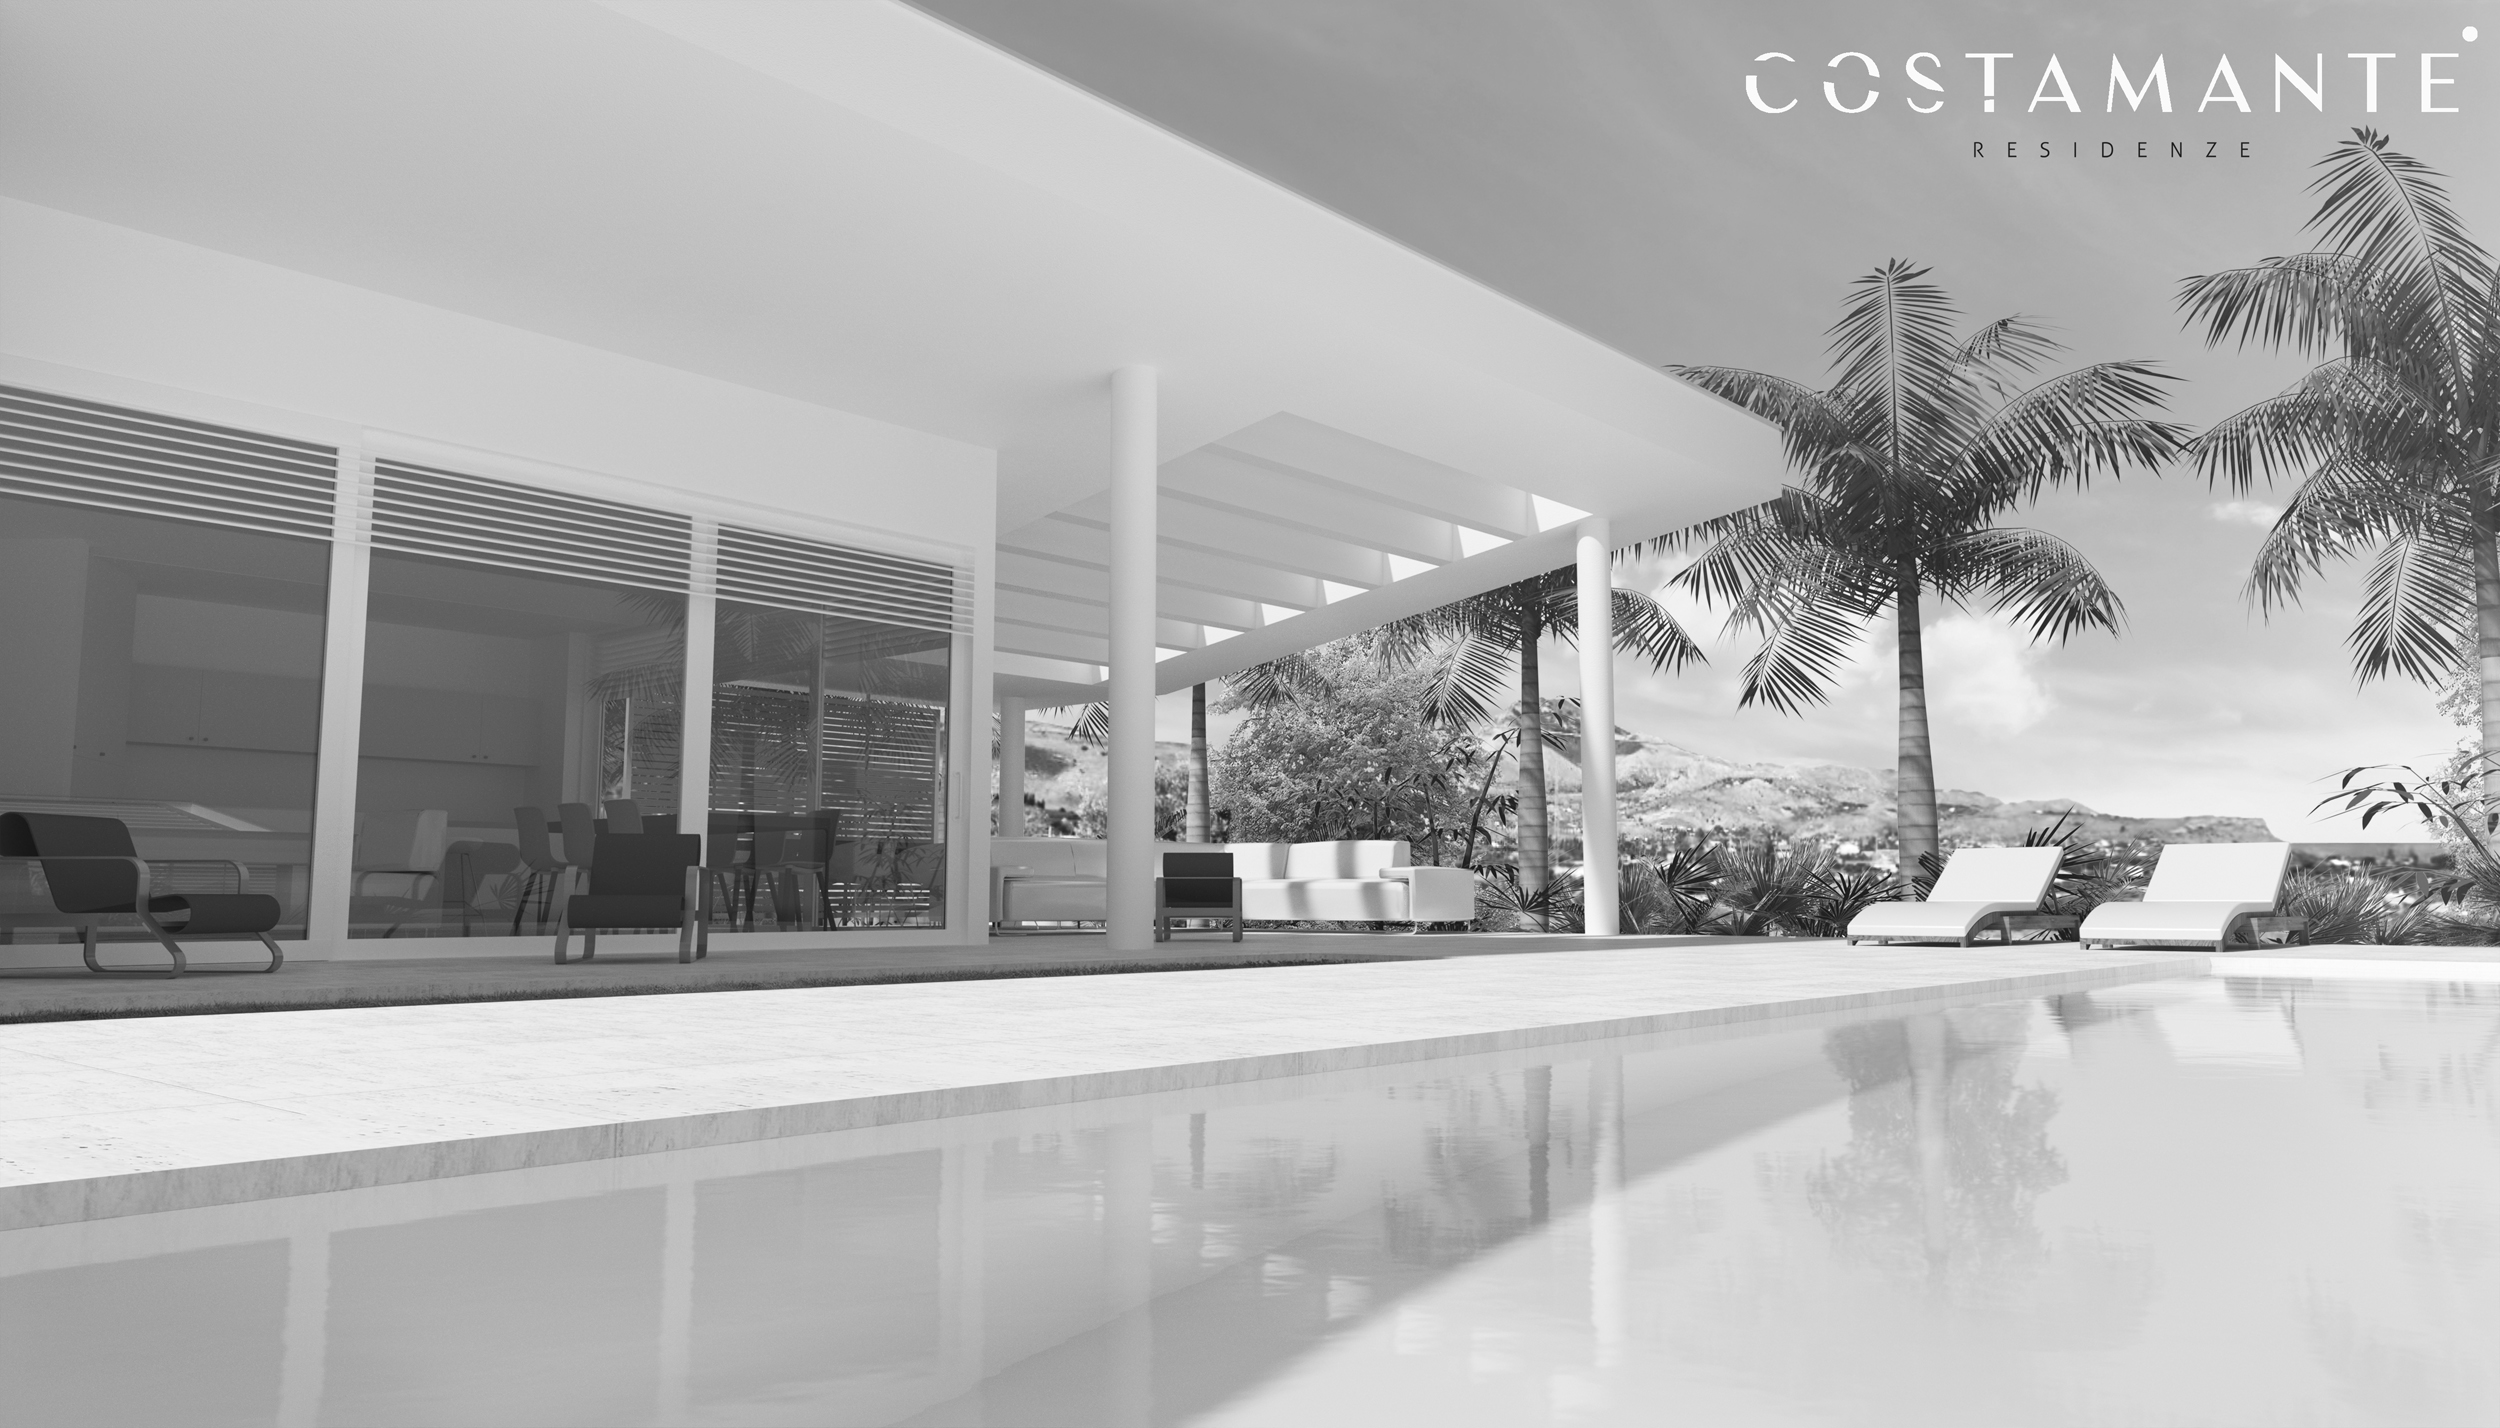 Costamante Residenze 8